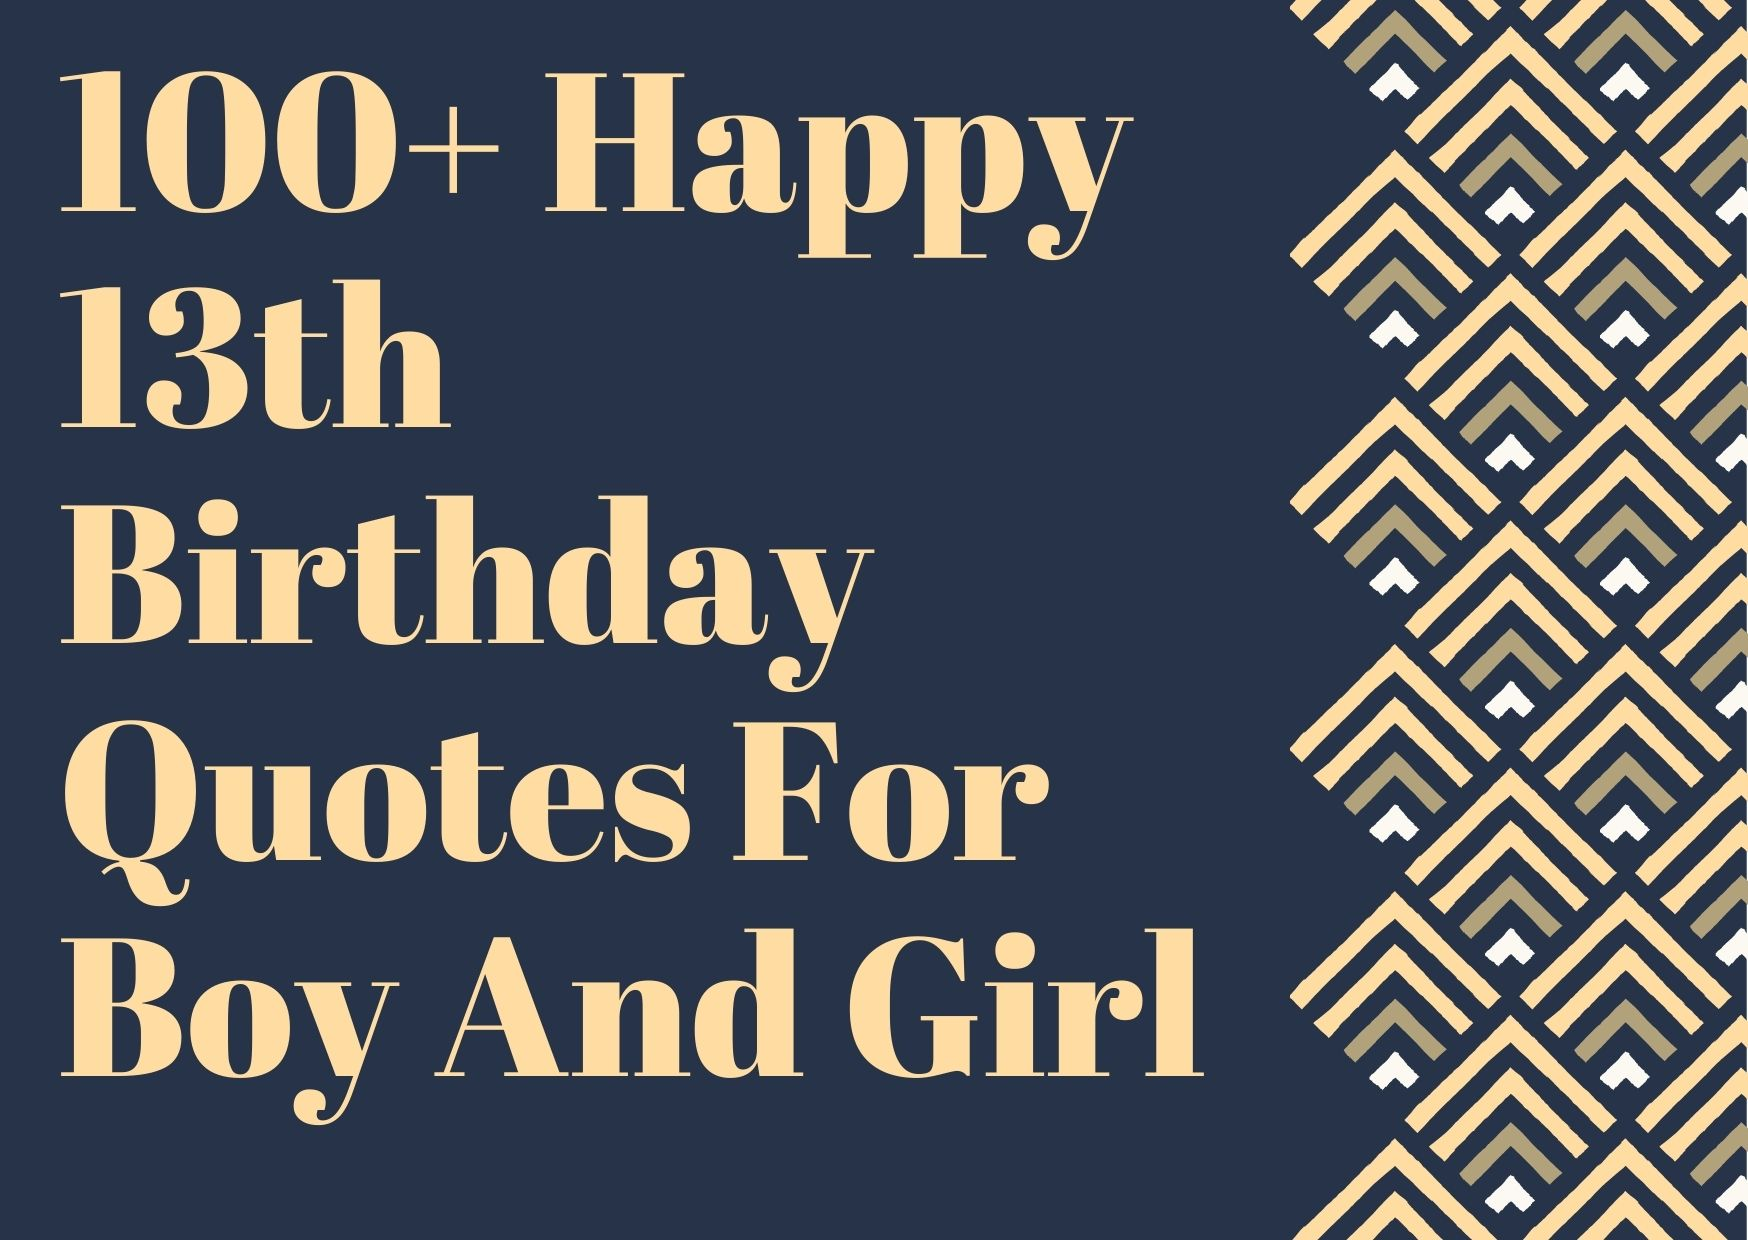 100+ Happy 13th Birthday Quotes For Boy And Girl